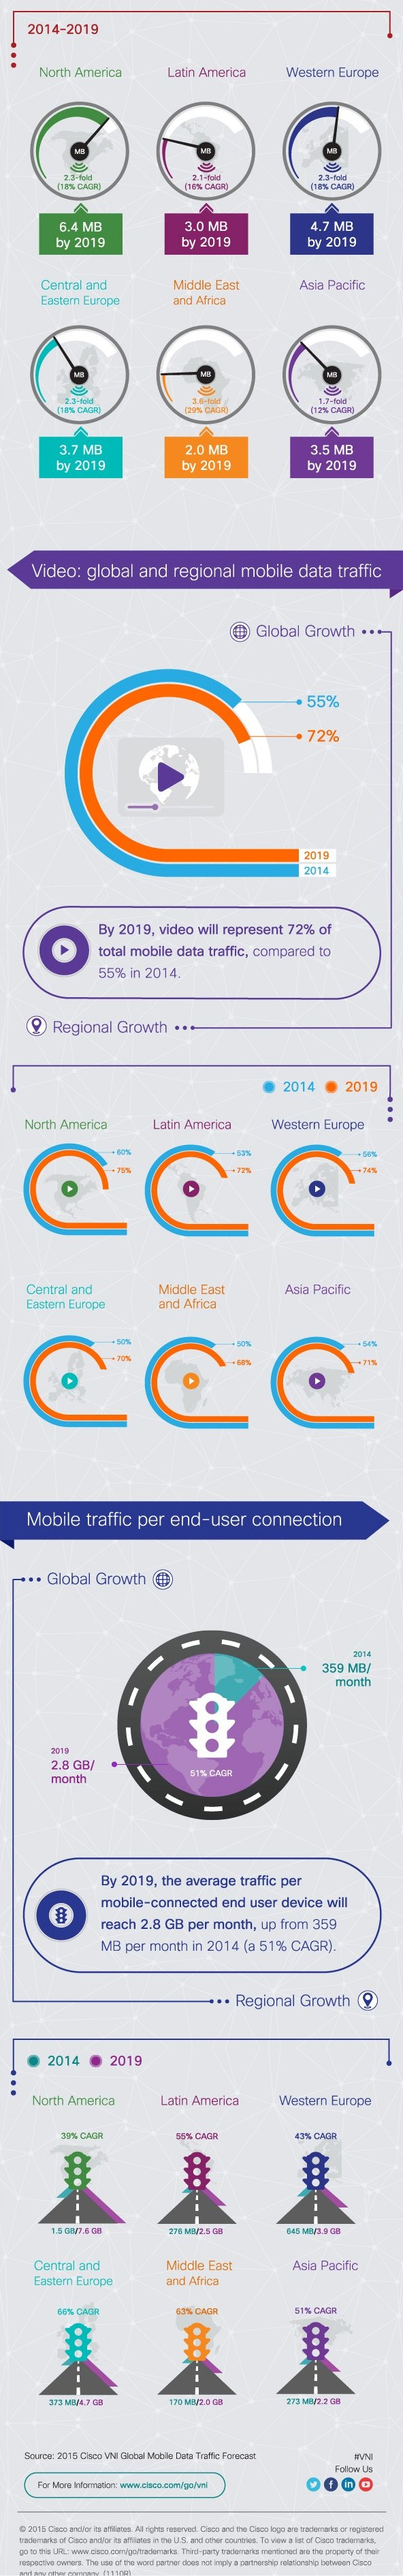 infografik cisco visual network index 2